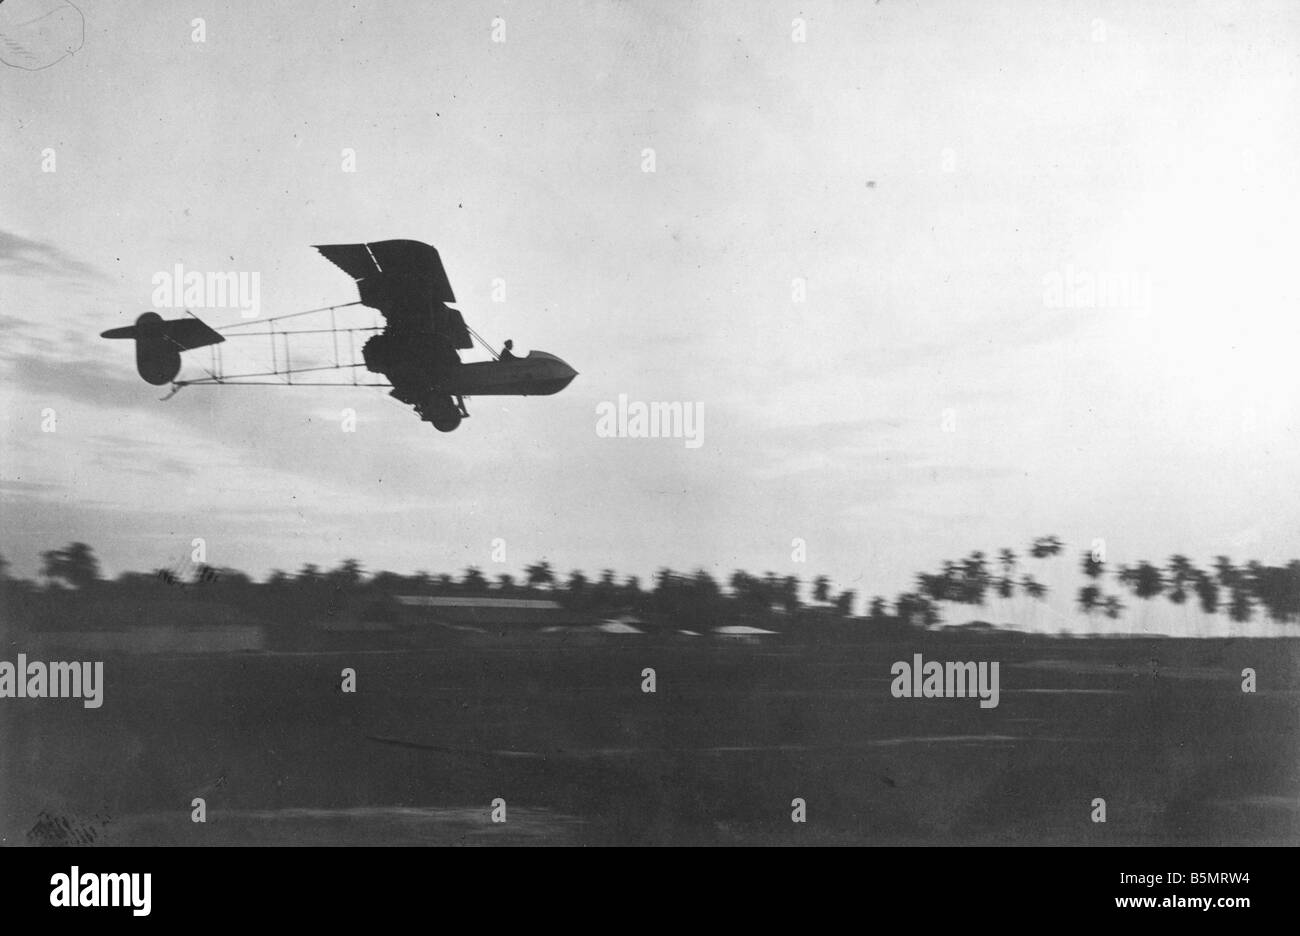 9AF 1914 0 0 A5 3 Military plane Ger East Africa World War 1 War in the colonies German East Africa now Tanzania Military plane Stock Photo